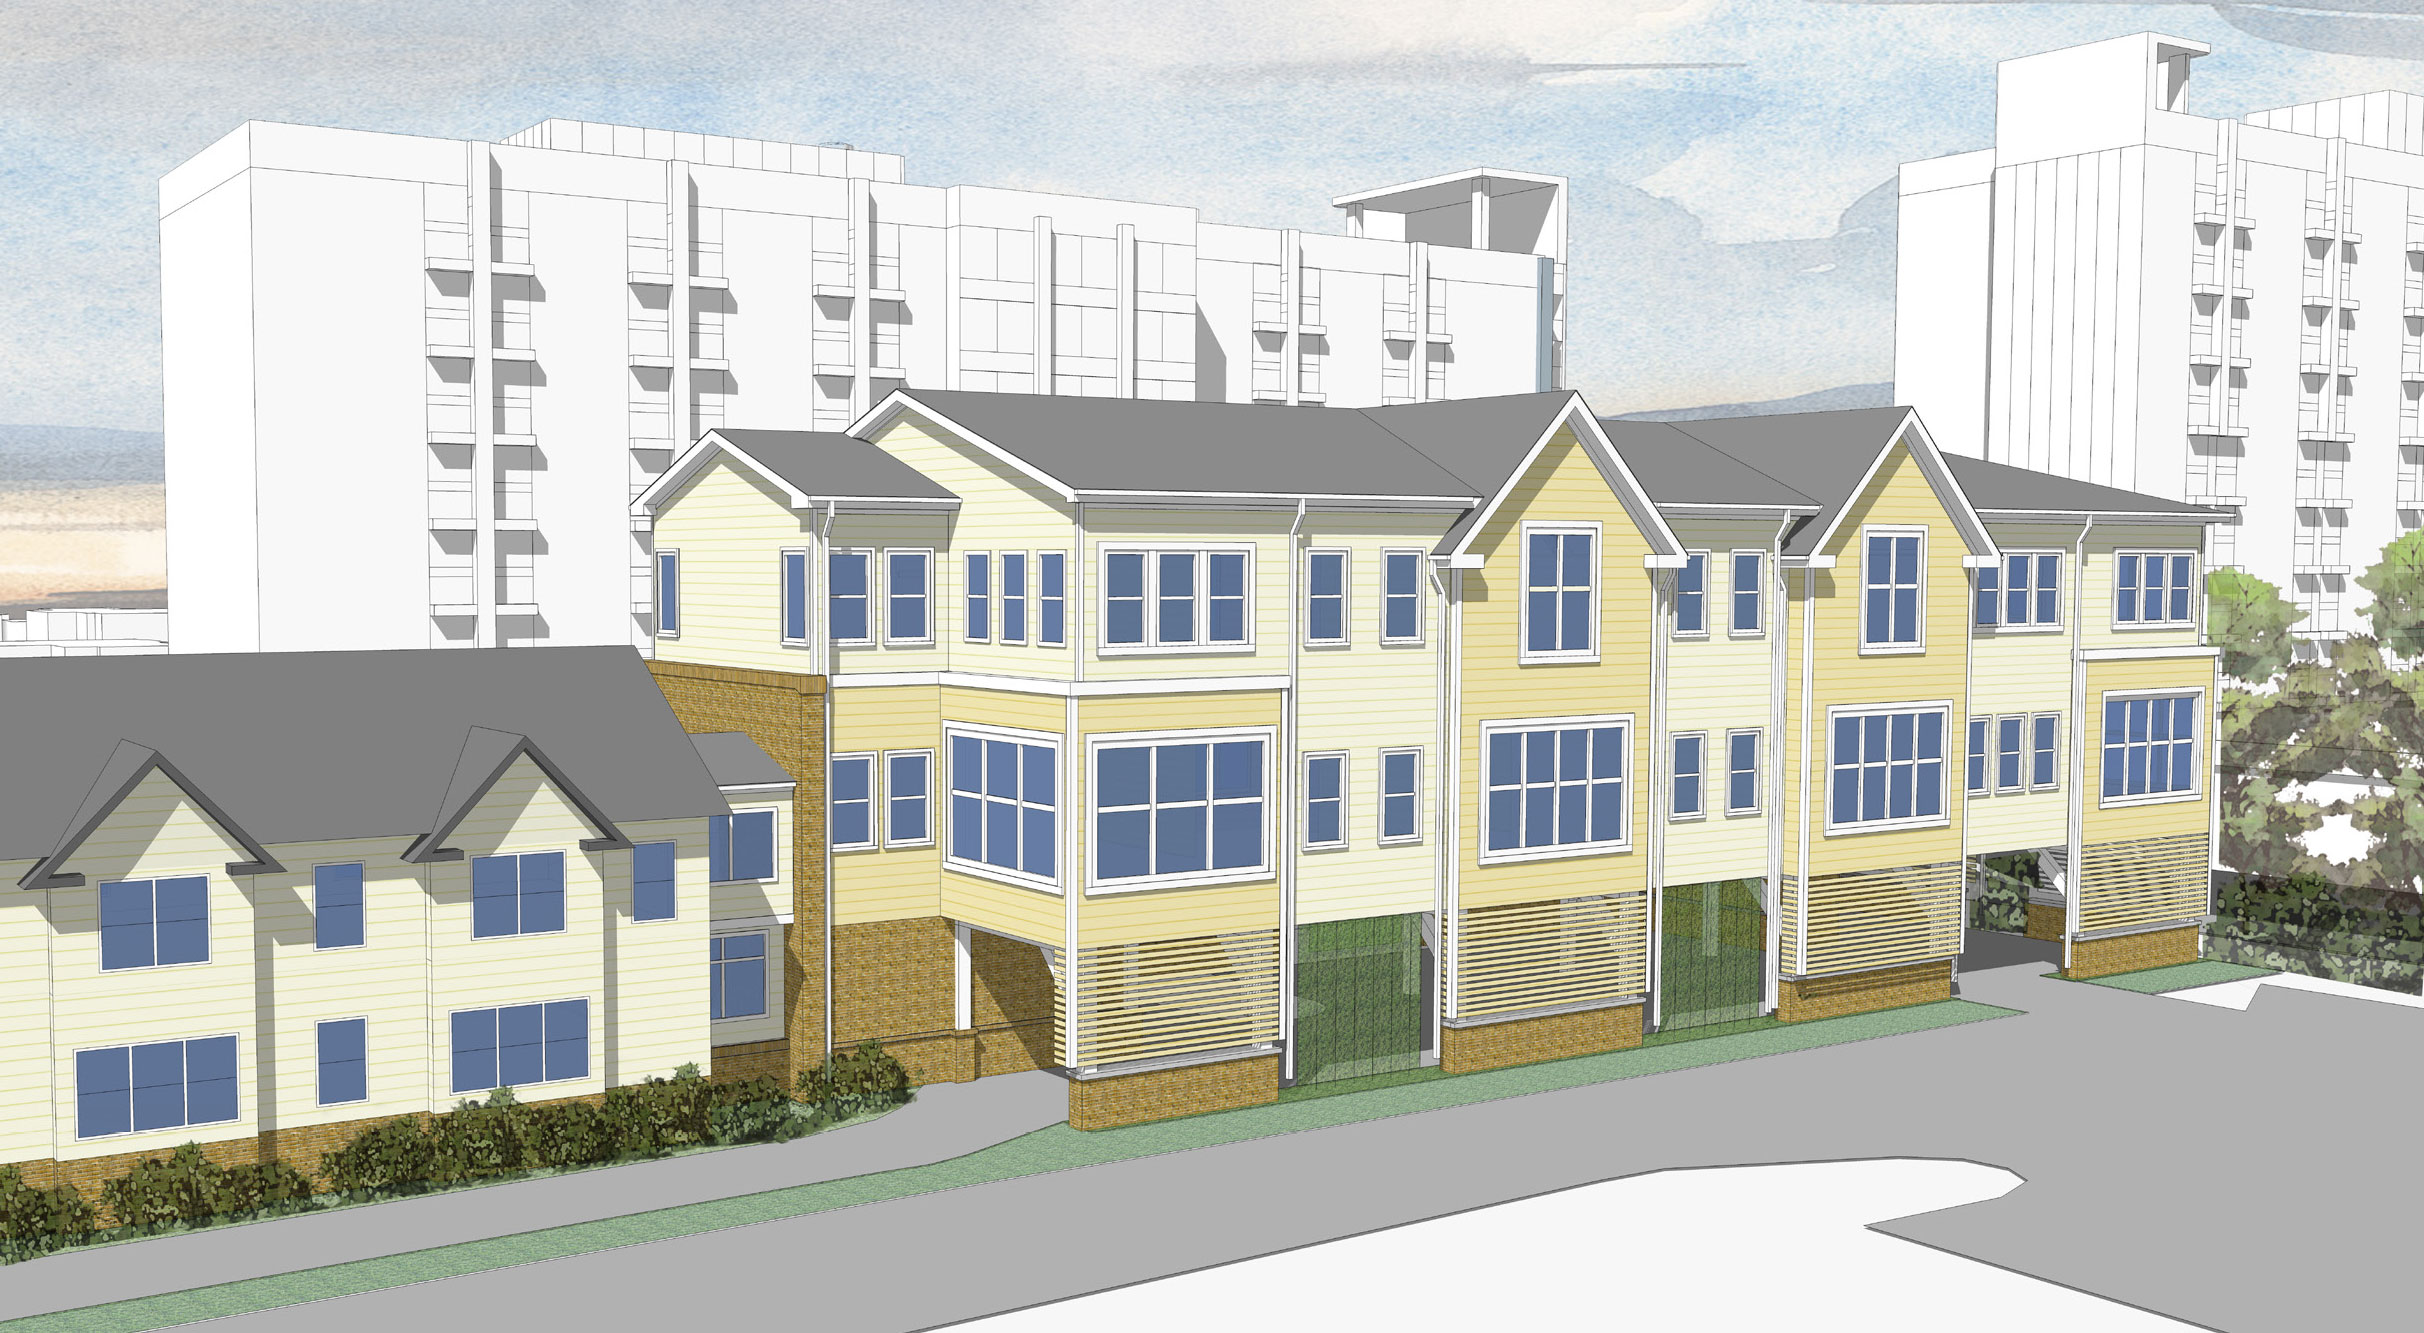 214 West Cameron - Architect's rendering of 12,000 sq. ft. addition